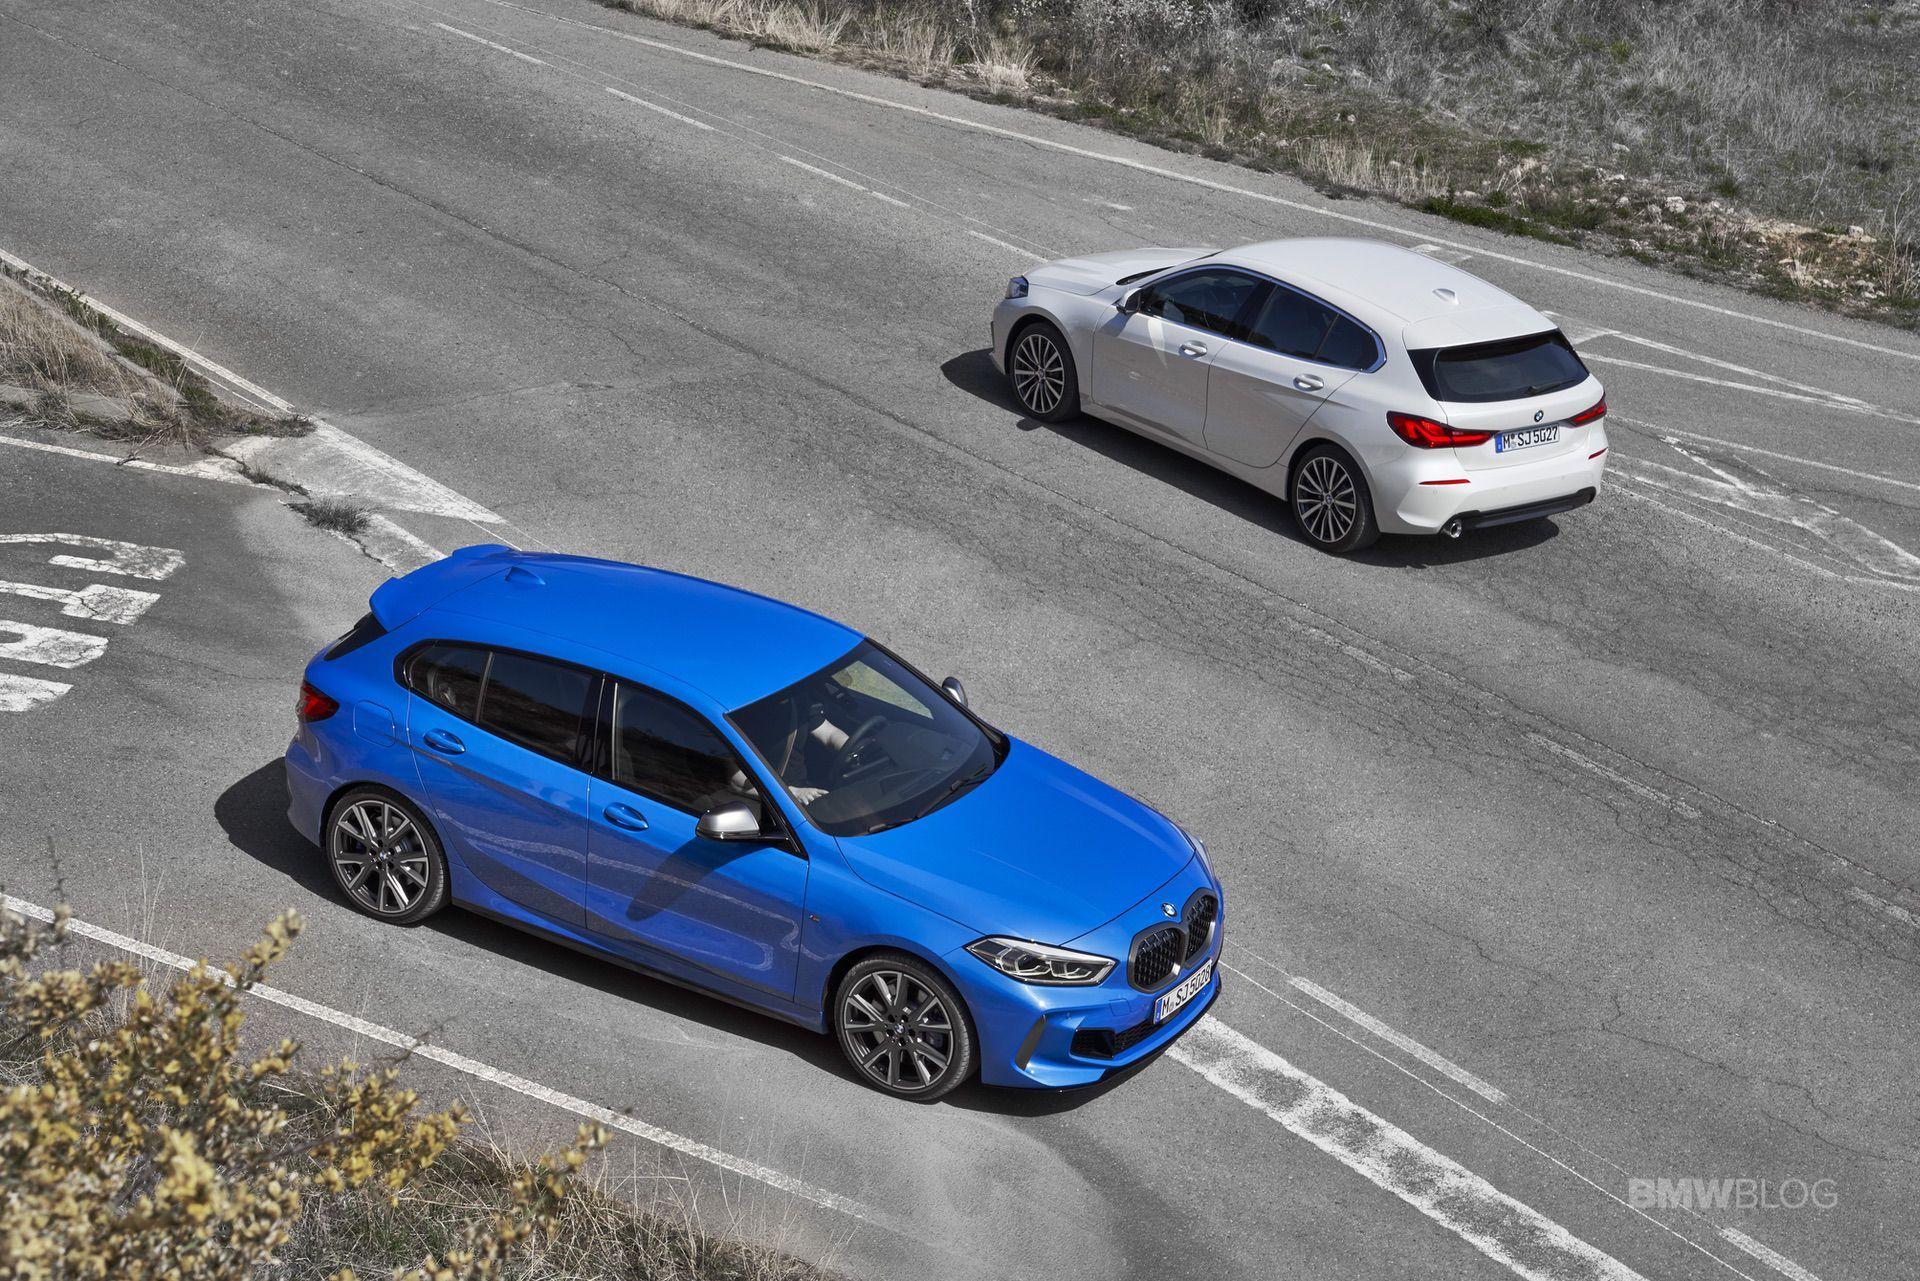 2019 Bmw 1 Series Prices From 28 200 Euros For 118i With Front